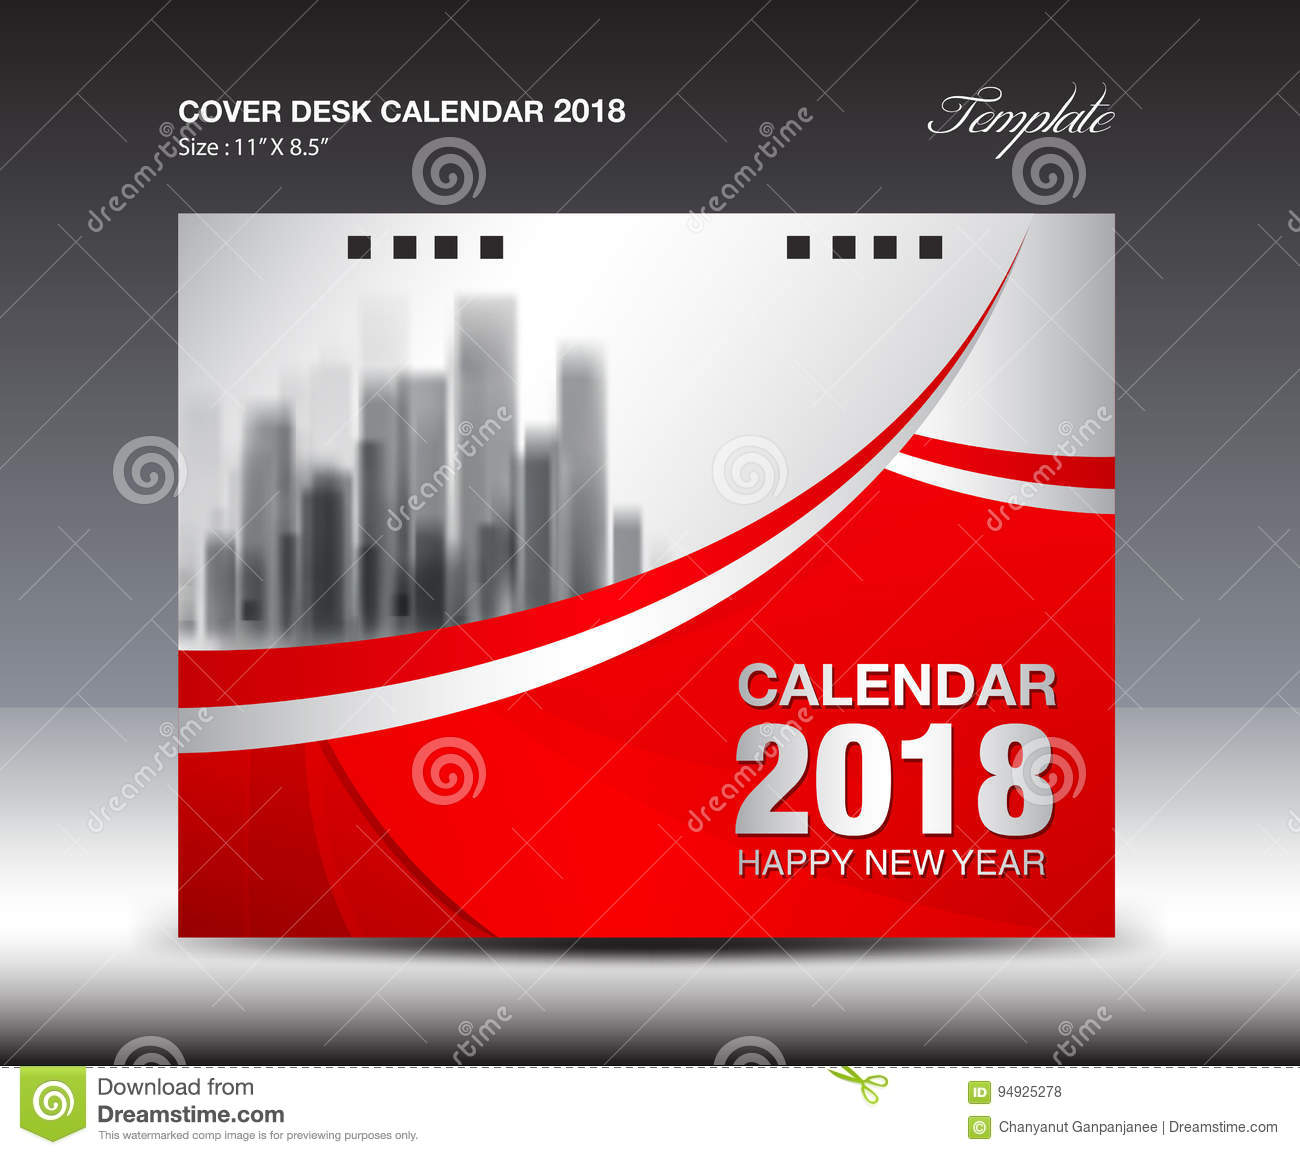 Cover Calendar Design Vector : Red cover desk calendar year template design stock